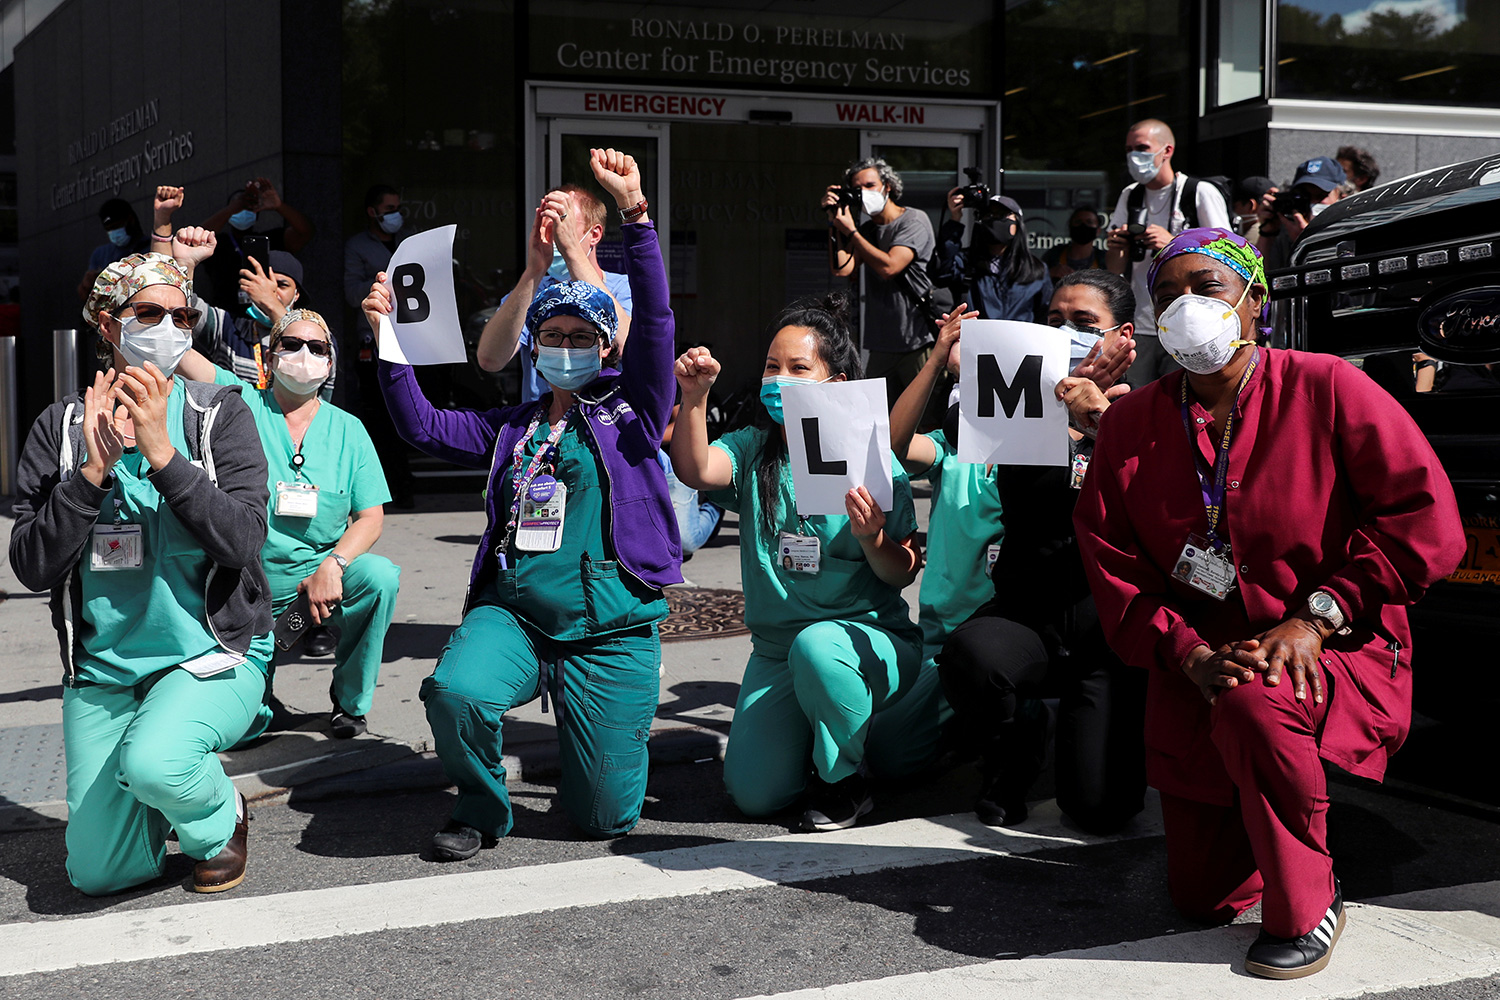 The photo shows a number of health workers taking a knee in protest.